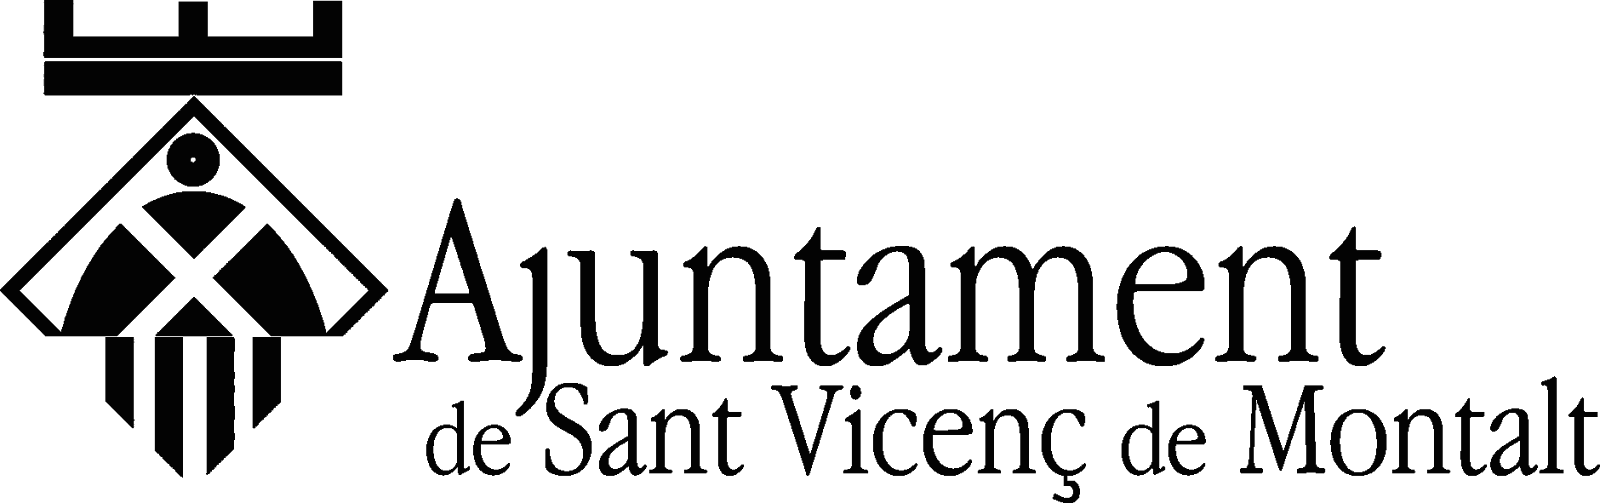 Ajuntament de Sant Vicenç